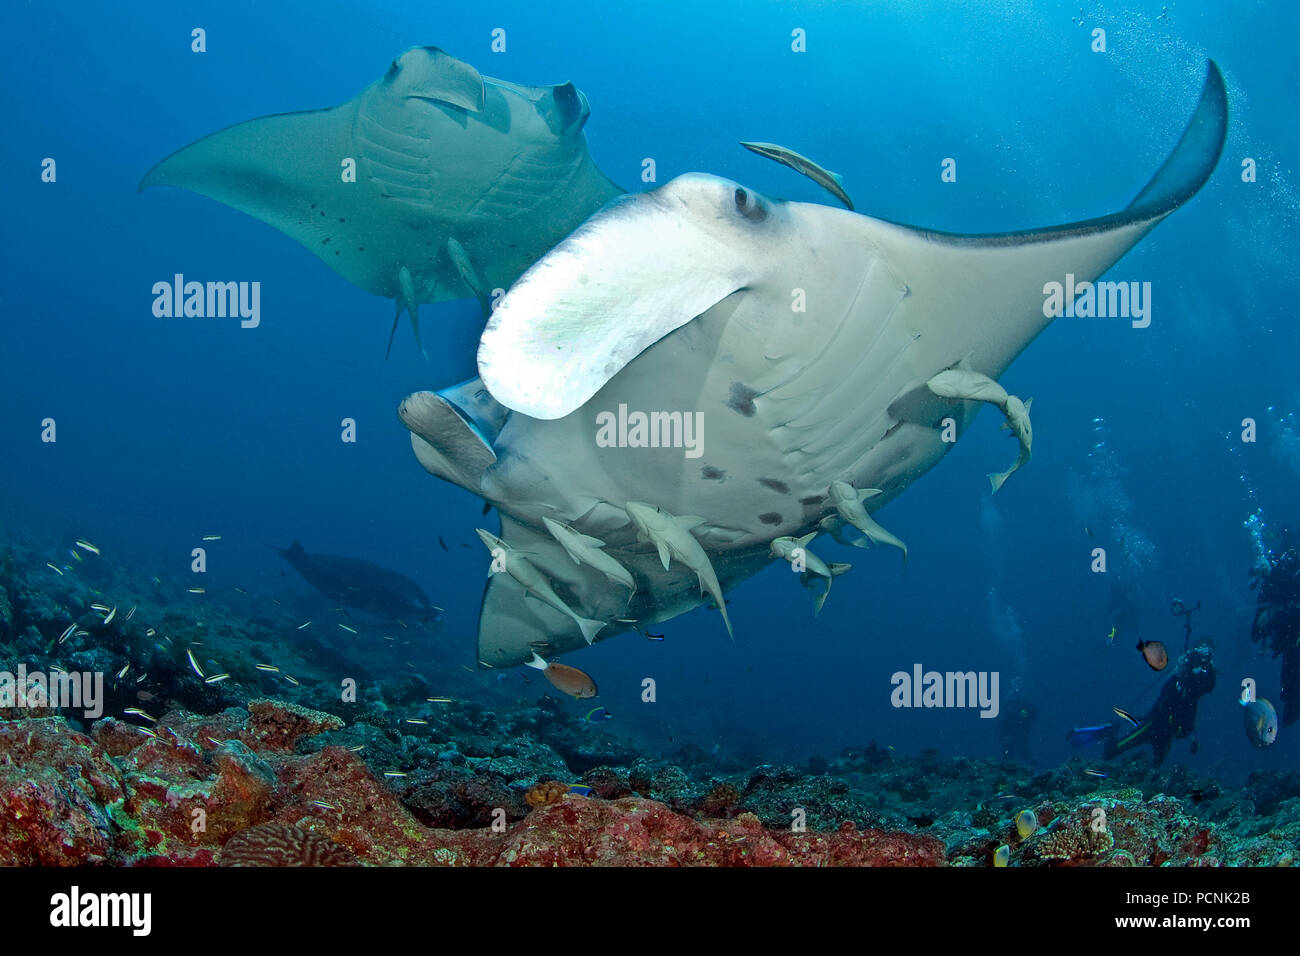 Two Giant oceanic manta rays (Manta birostris) with shark suckers (Remora remora), Yap, Micronesia Stock Photo